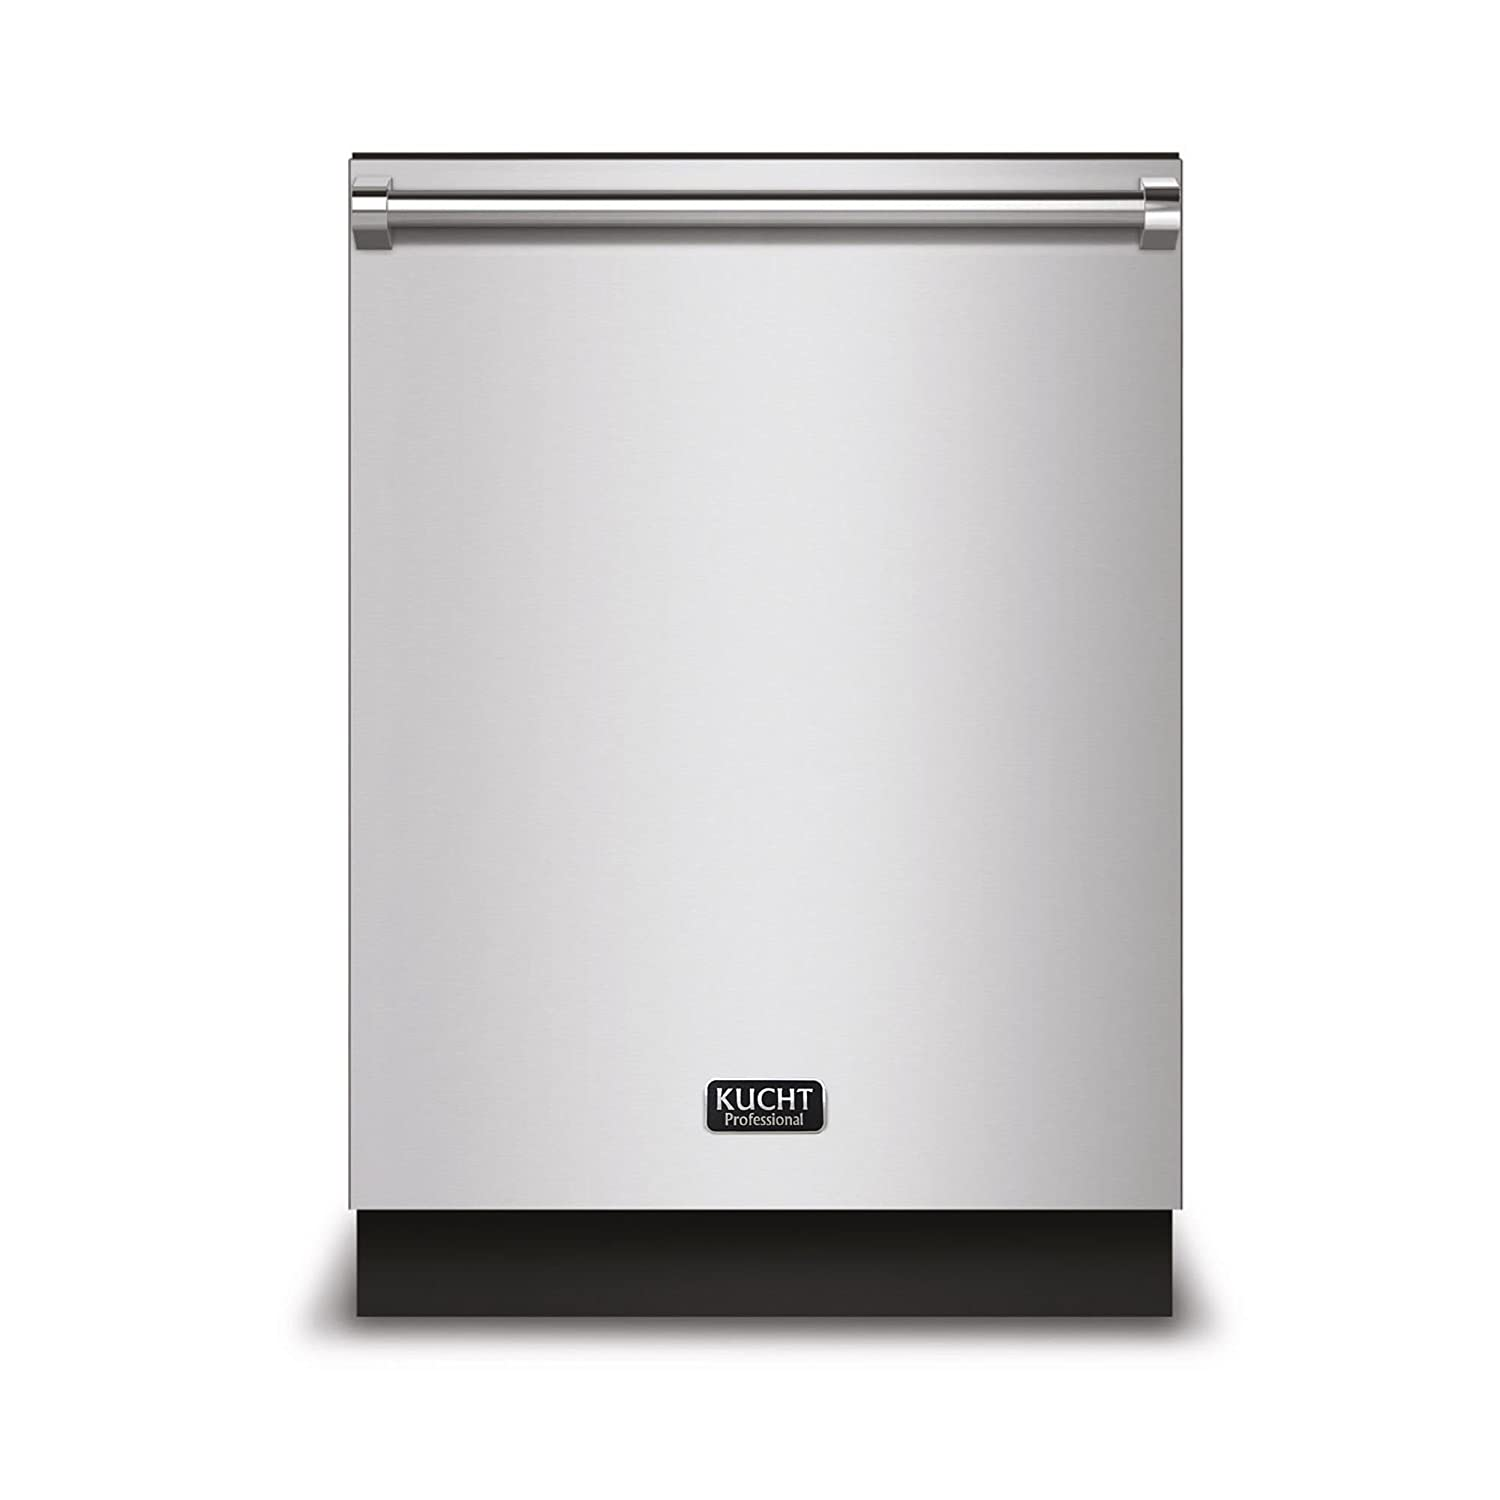 "Kucht K6502D Professional 24"" Top Control Dishwasher, Stainless-Steel"